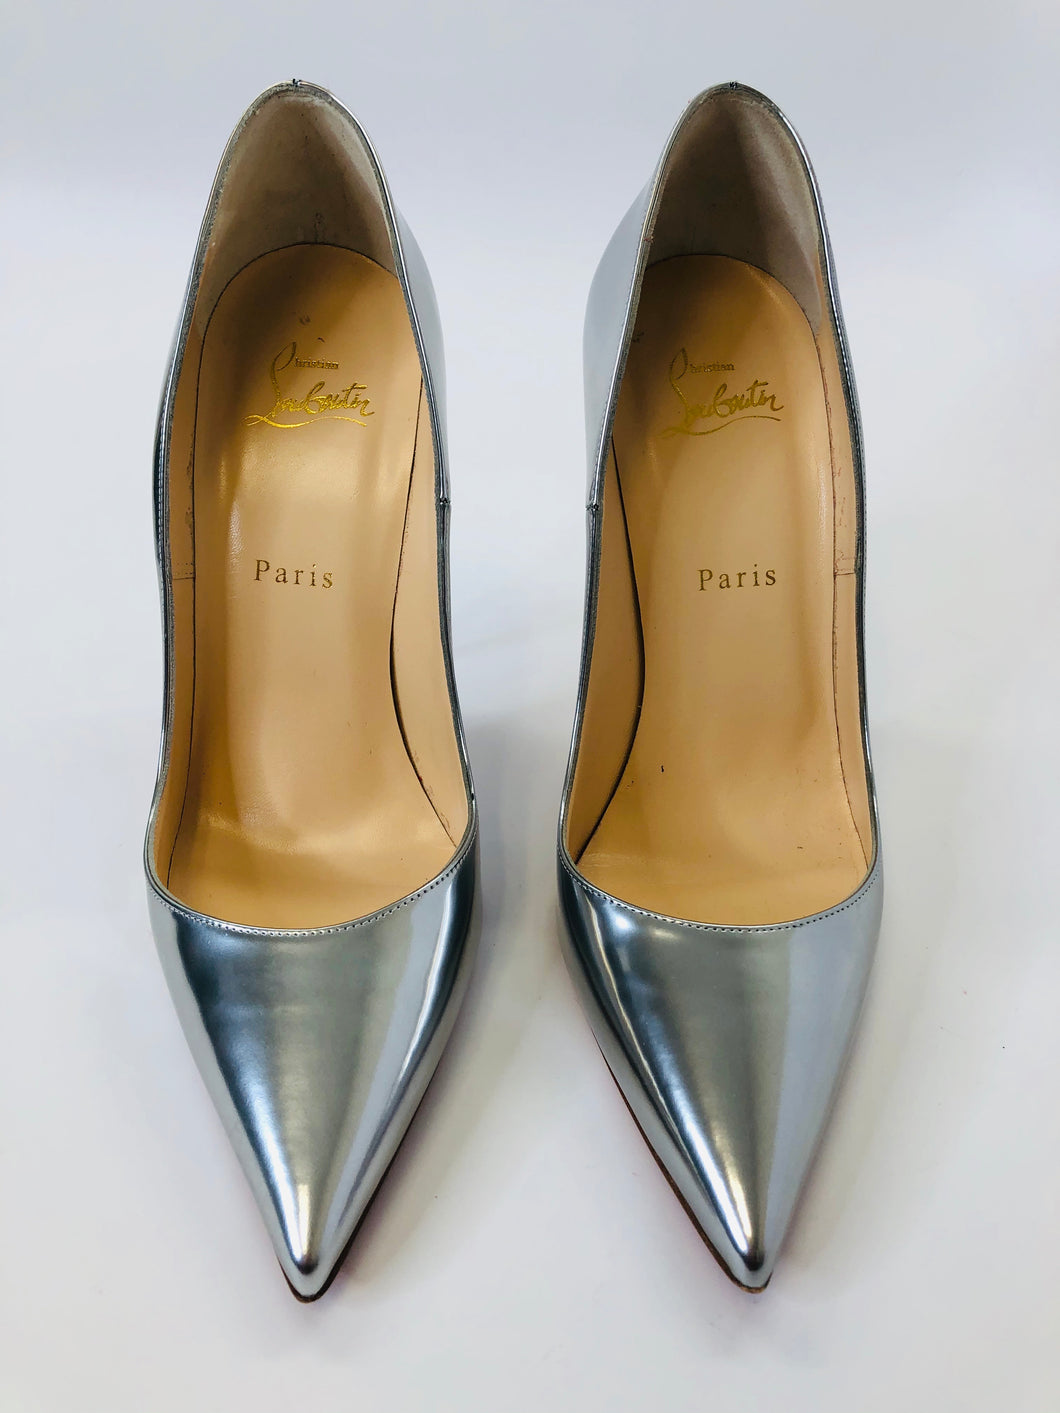 Christian Louboutin Silver Leather So Kate 120 Pumps size 39 1/2